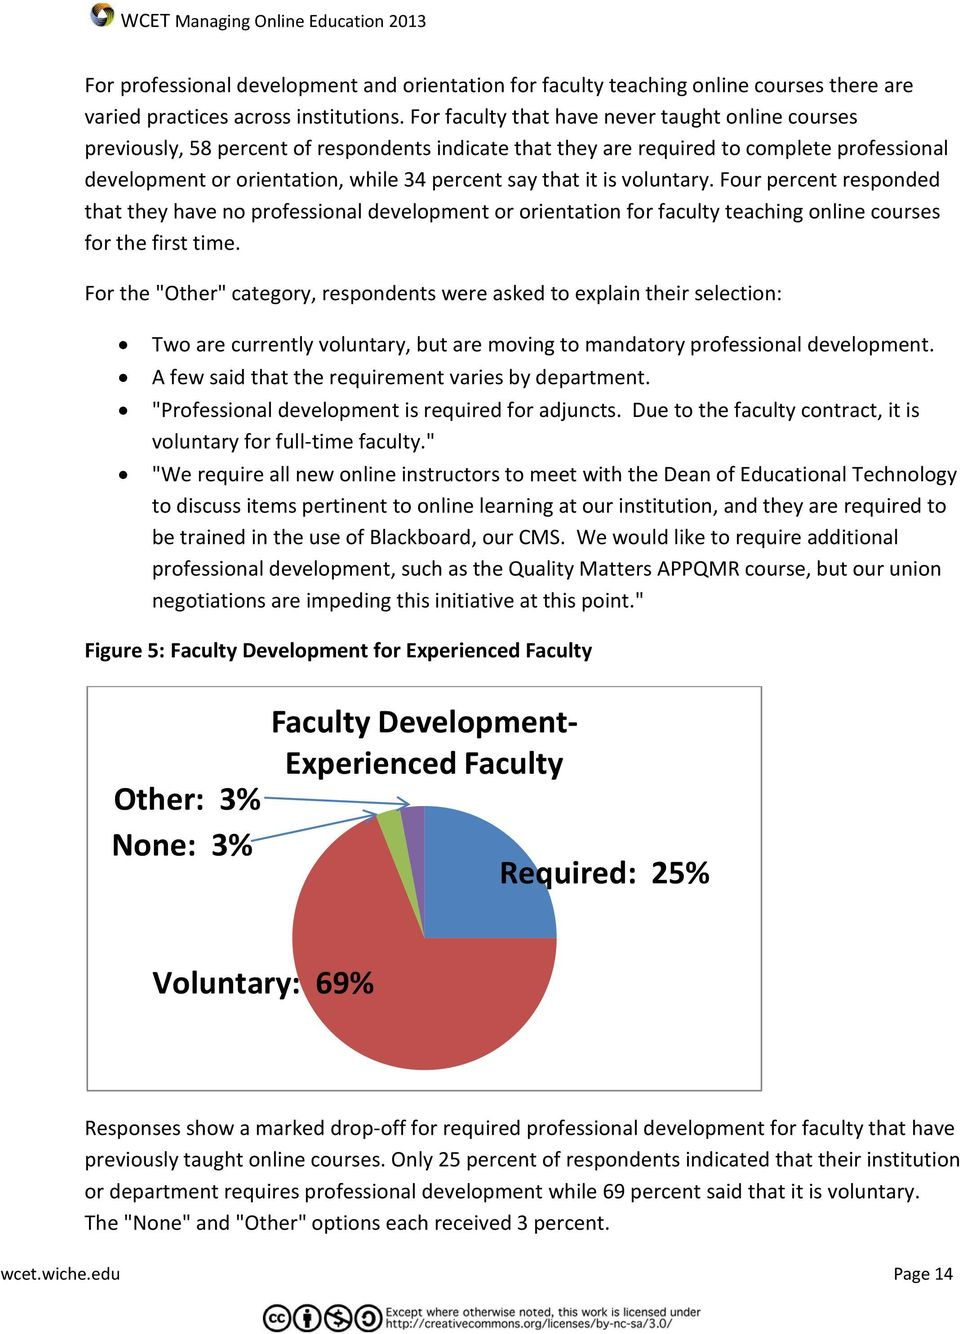 it is voluntary. Four percent responded that they have no professional development or orientation for faculty teaching online courses for the first time.